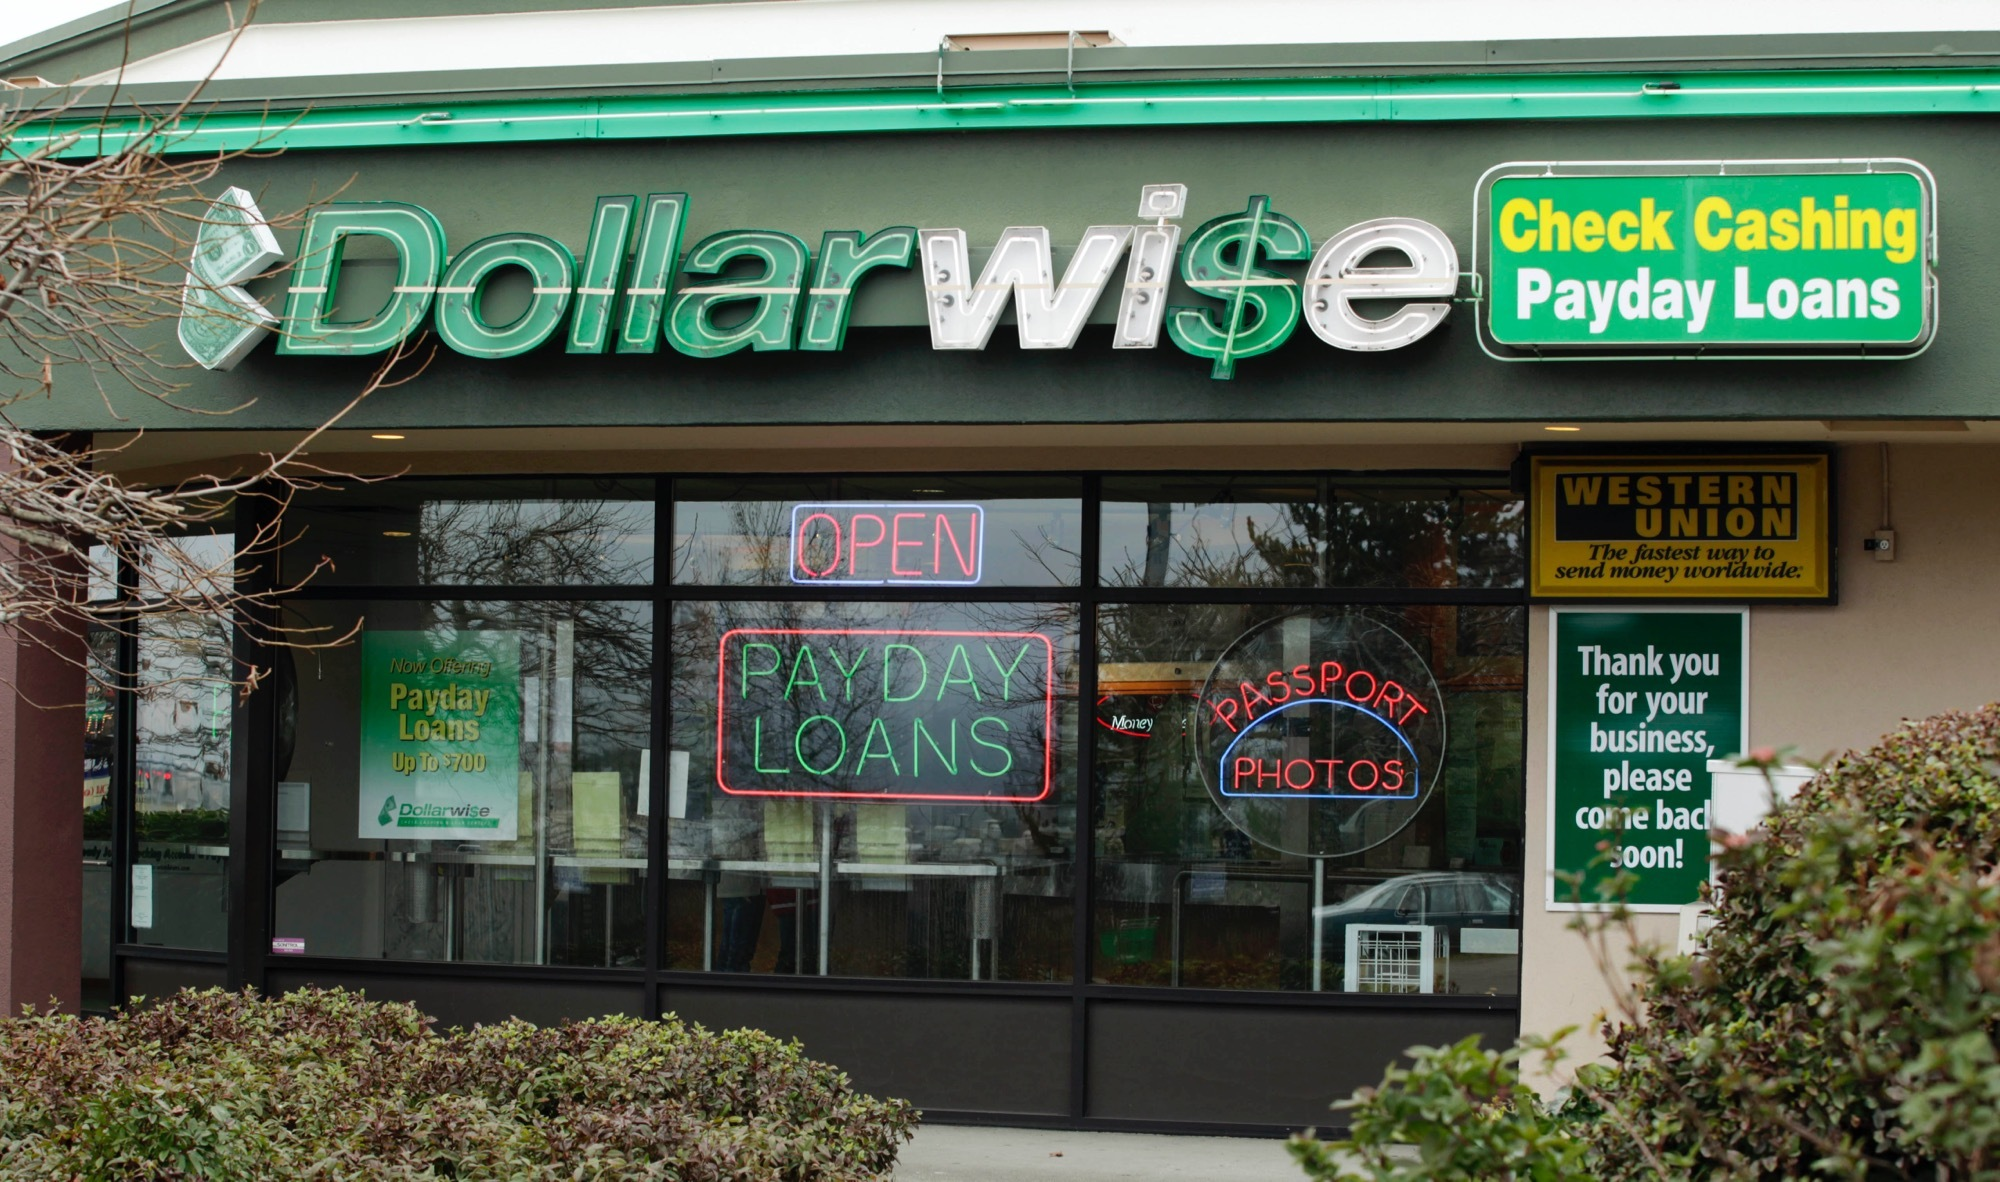 Proposed New Rules Could Put Predatory Payday Loan Companies Out of Business | VICE News